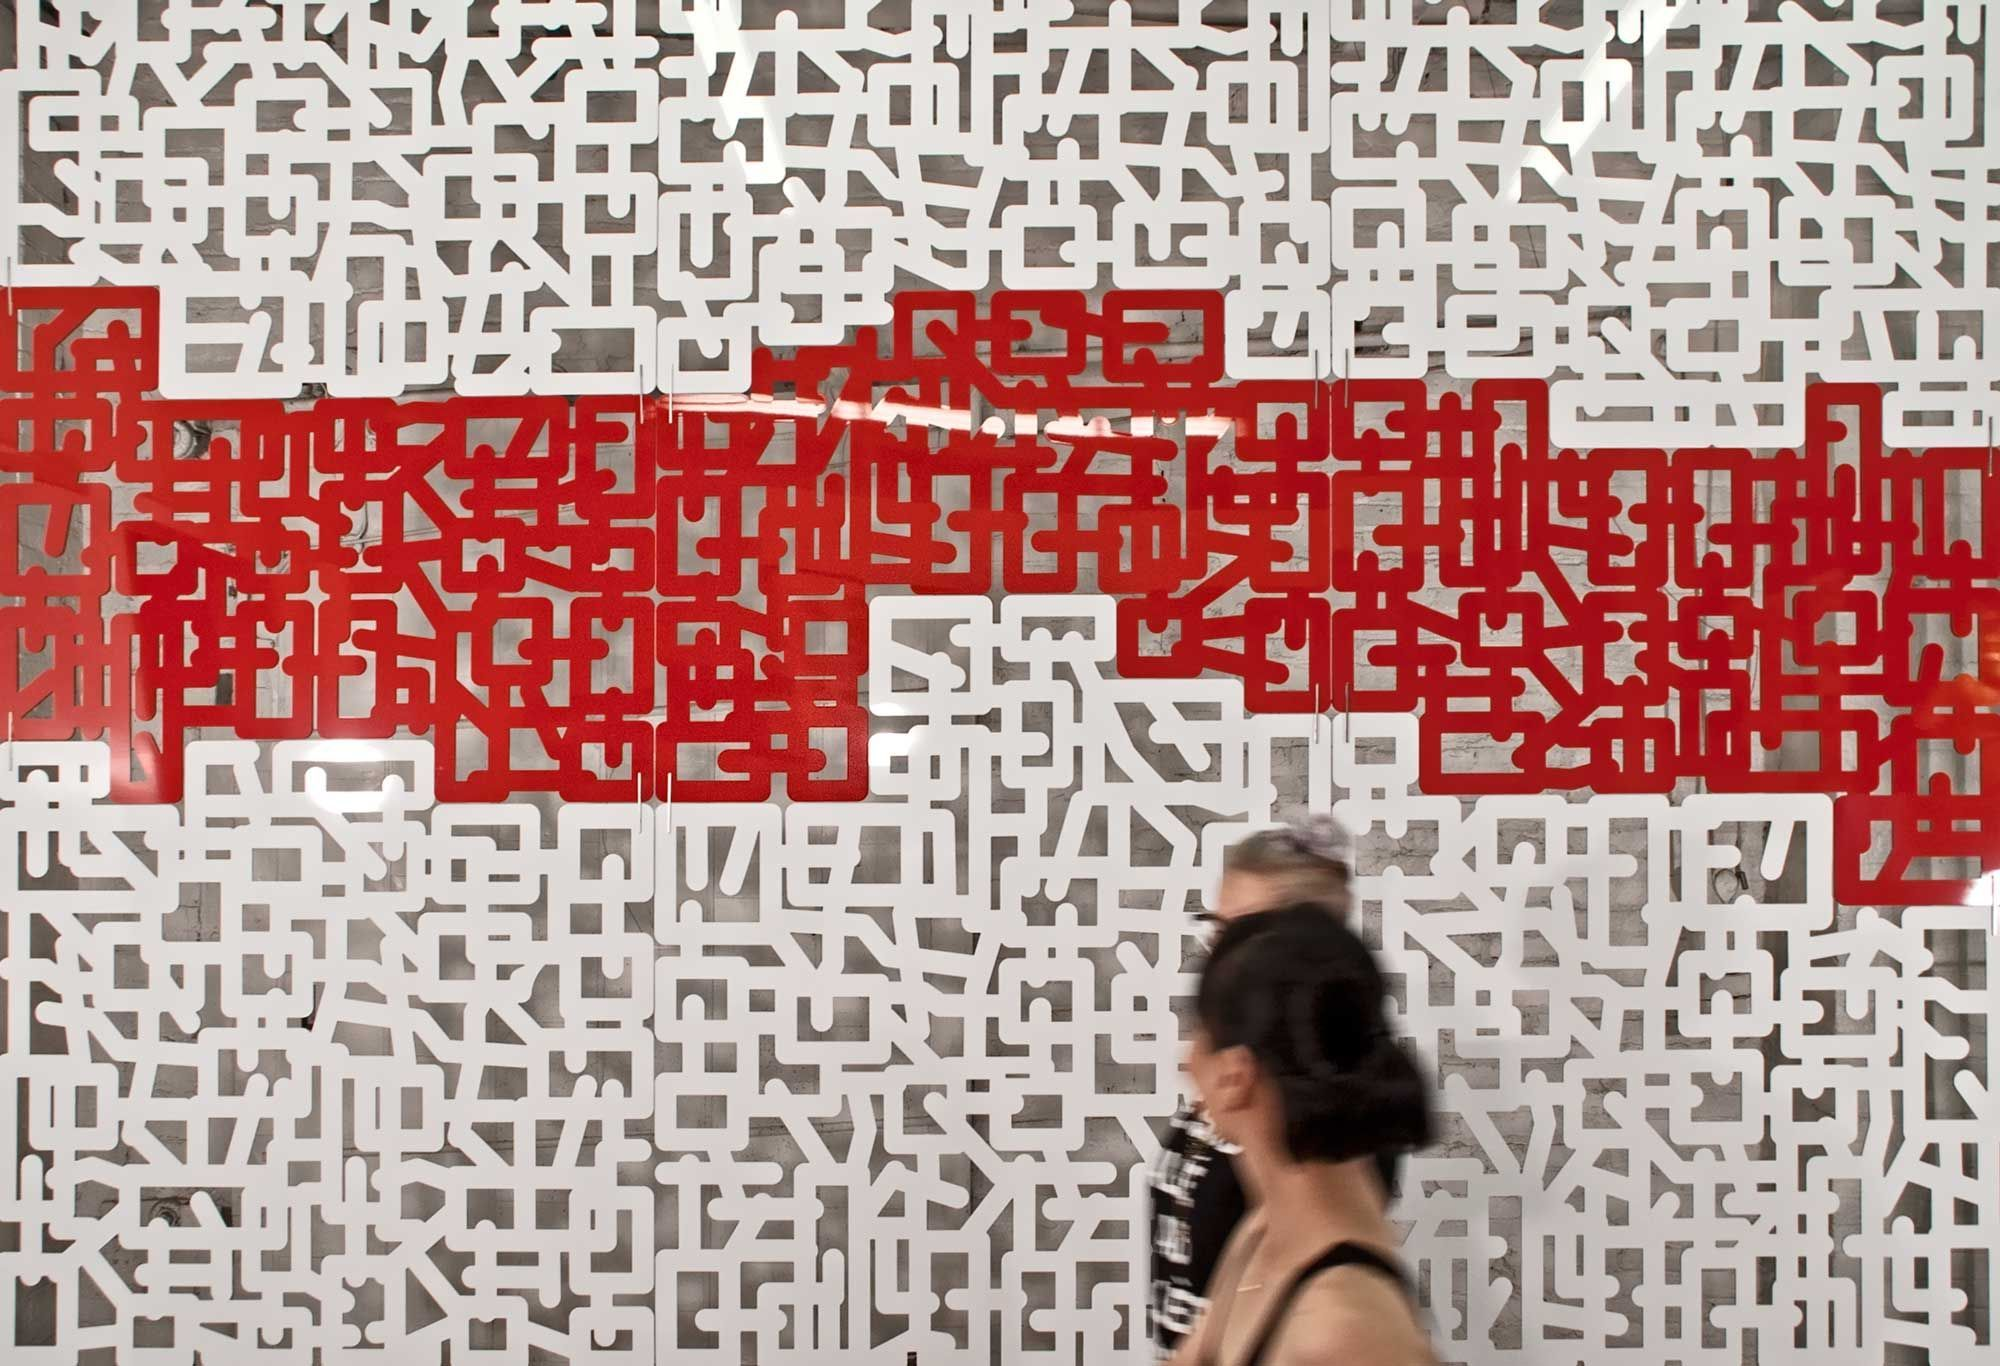 Decorative Screen Room Dividers By Razortoothdesign Techno Pattern Red And White Aluminum C Portable Room Dividers Sliding Room Dividers Hanging Room Dividers